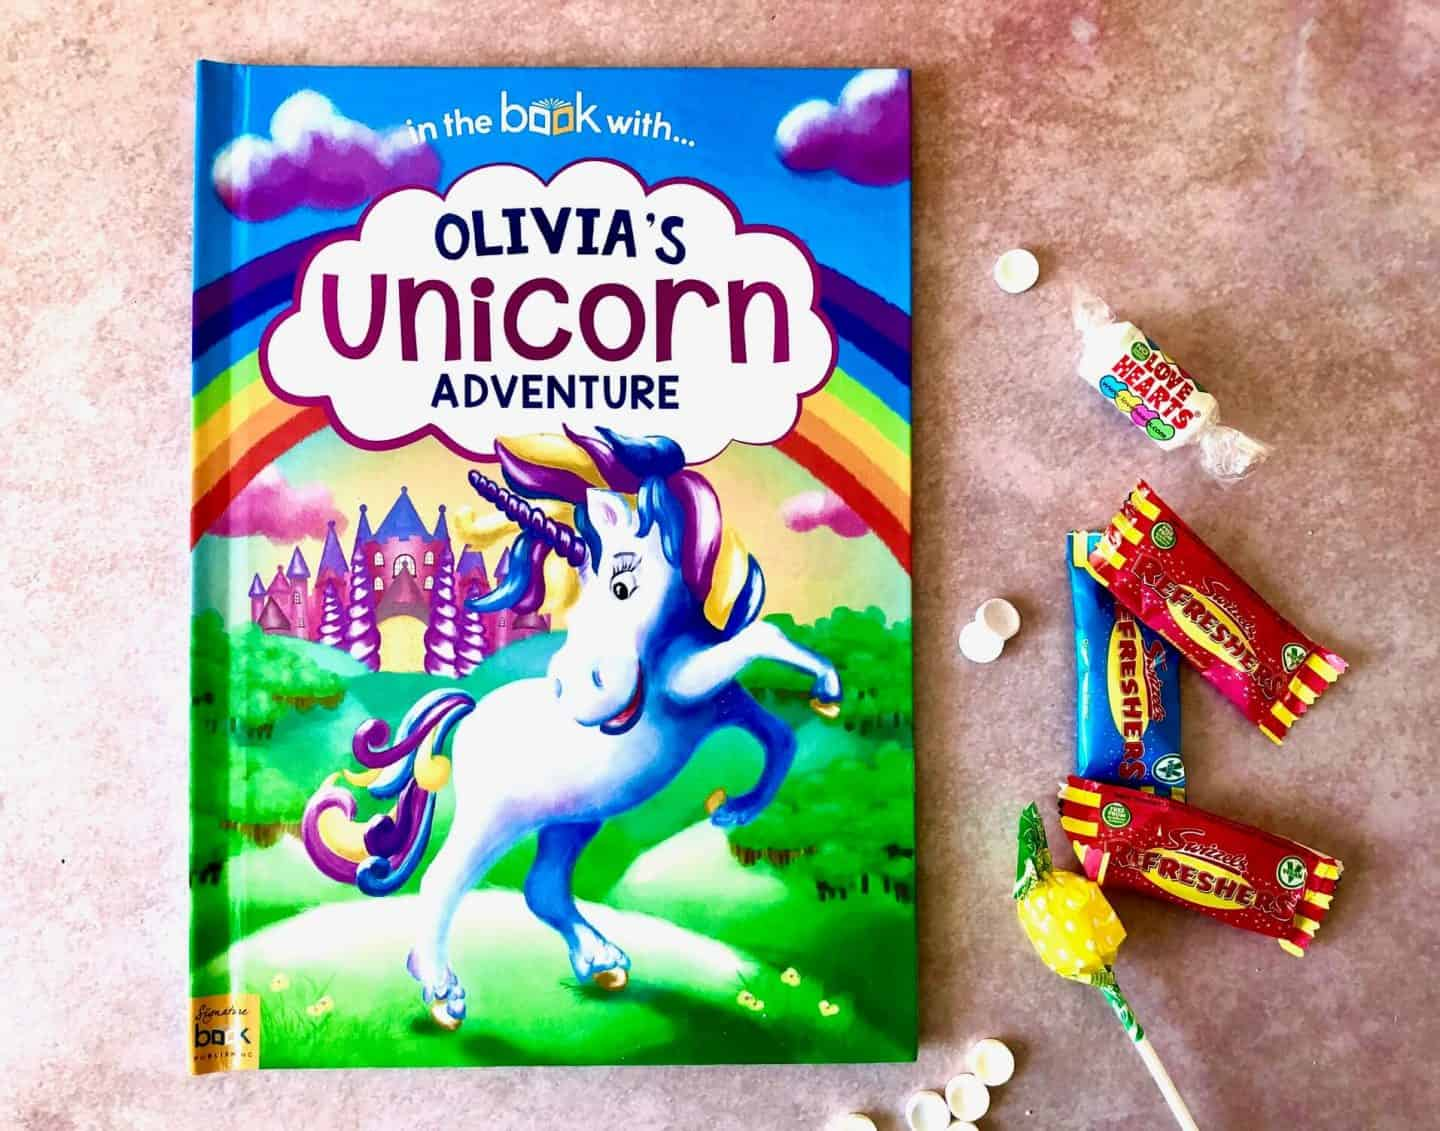 My Personalised Unicorn Adventure Book - Review and Giveaway